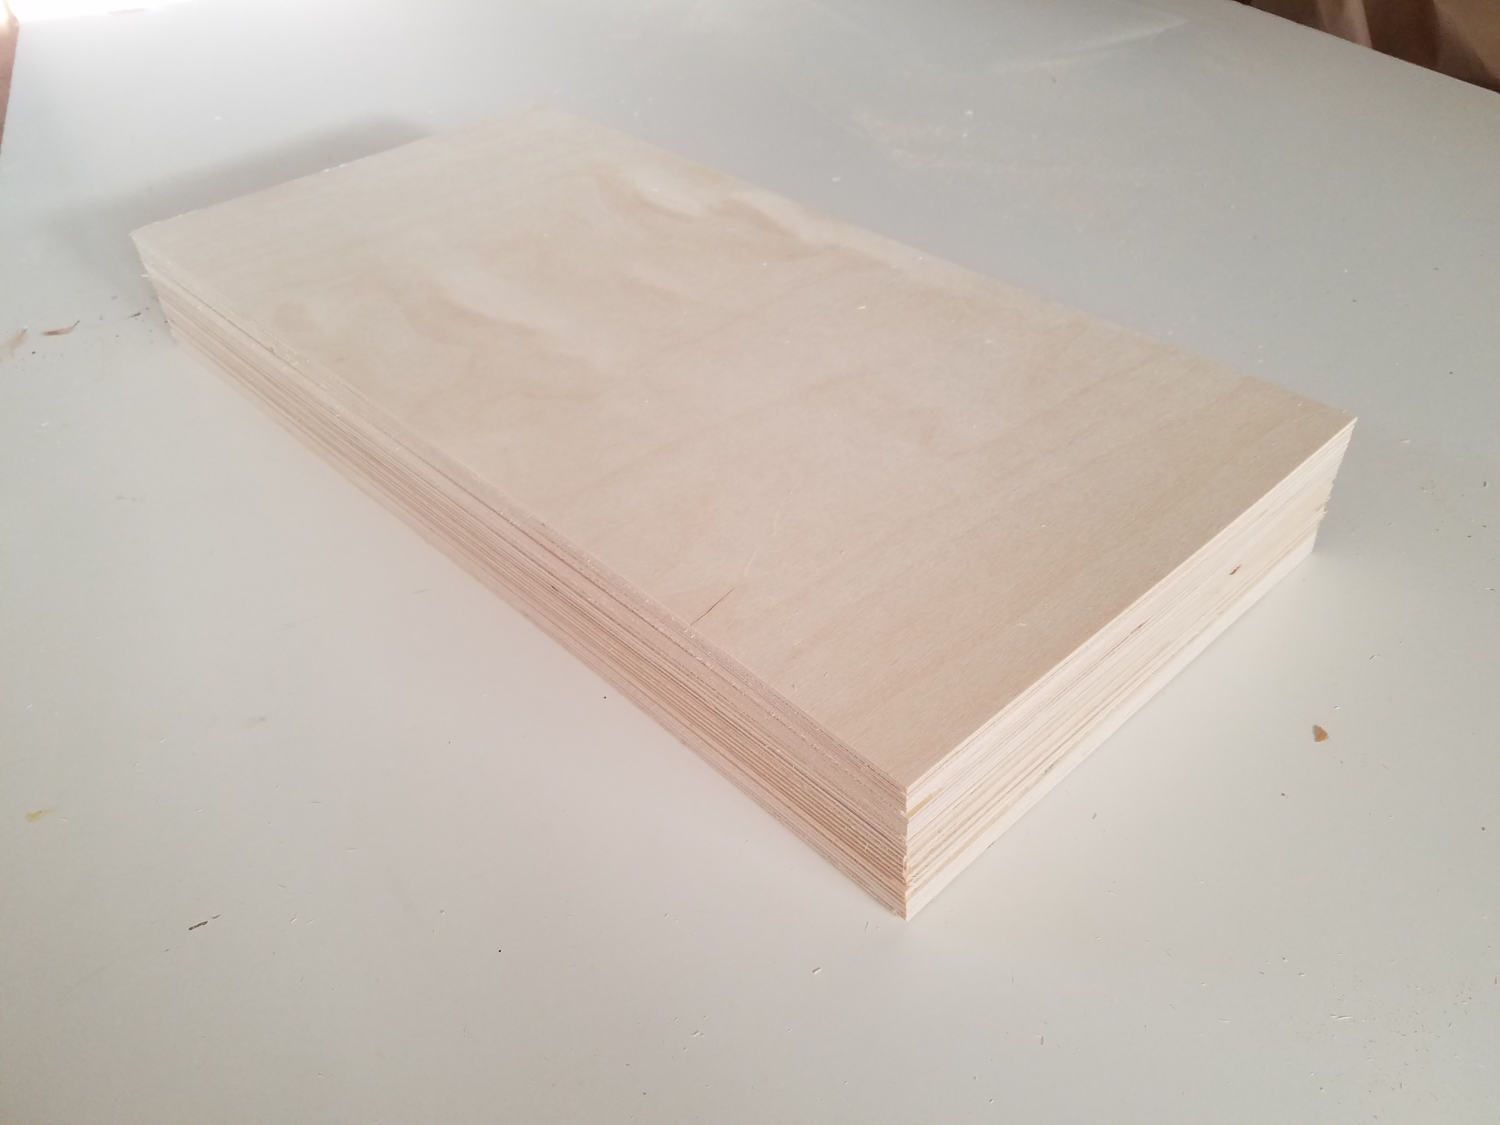 1 8 3mm Baltic Birch Plywood Sheets 24x12 24 Sheets By Americanlasersupply On Etsy Baltic Birch Plywood La Baltic Birch Plywood Birch Plywood Baltic Birch